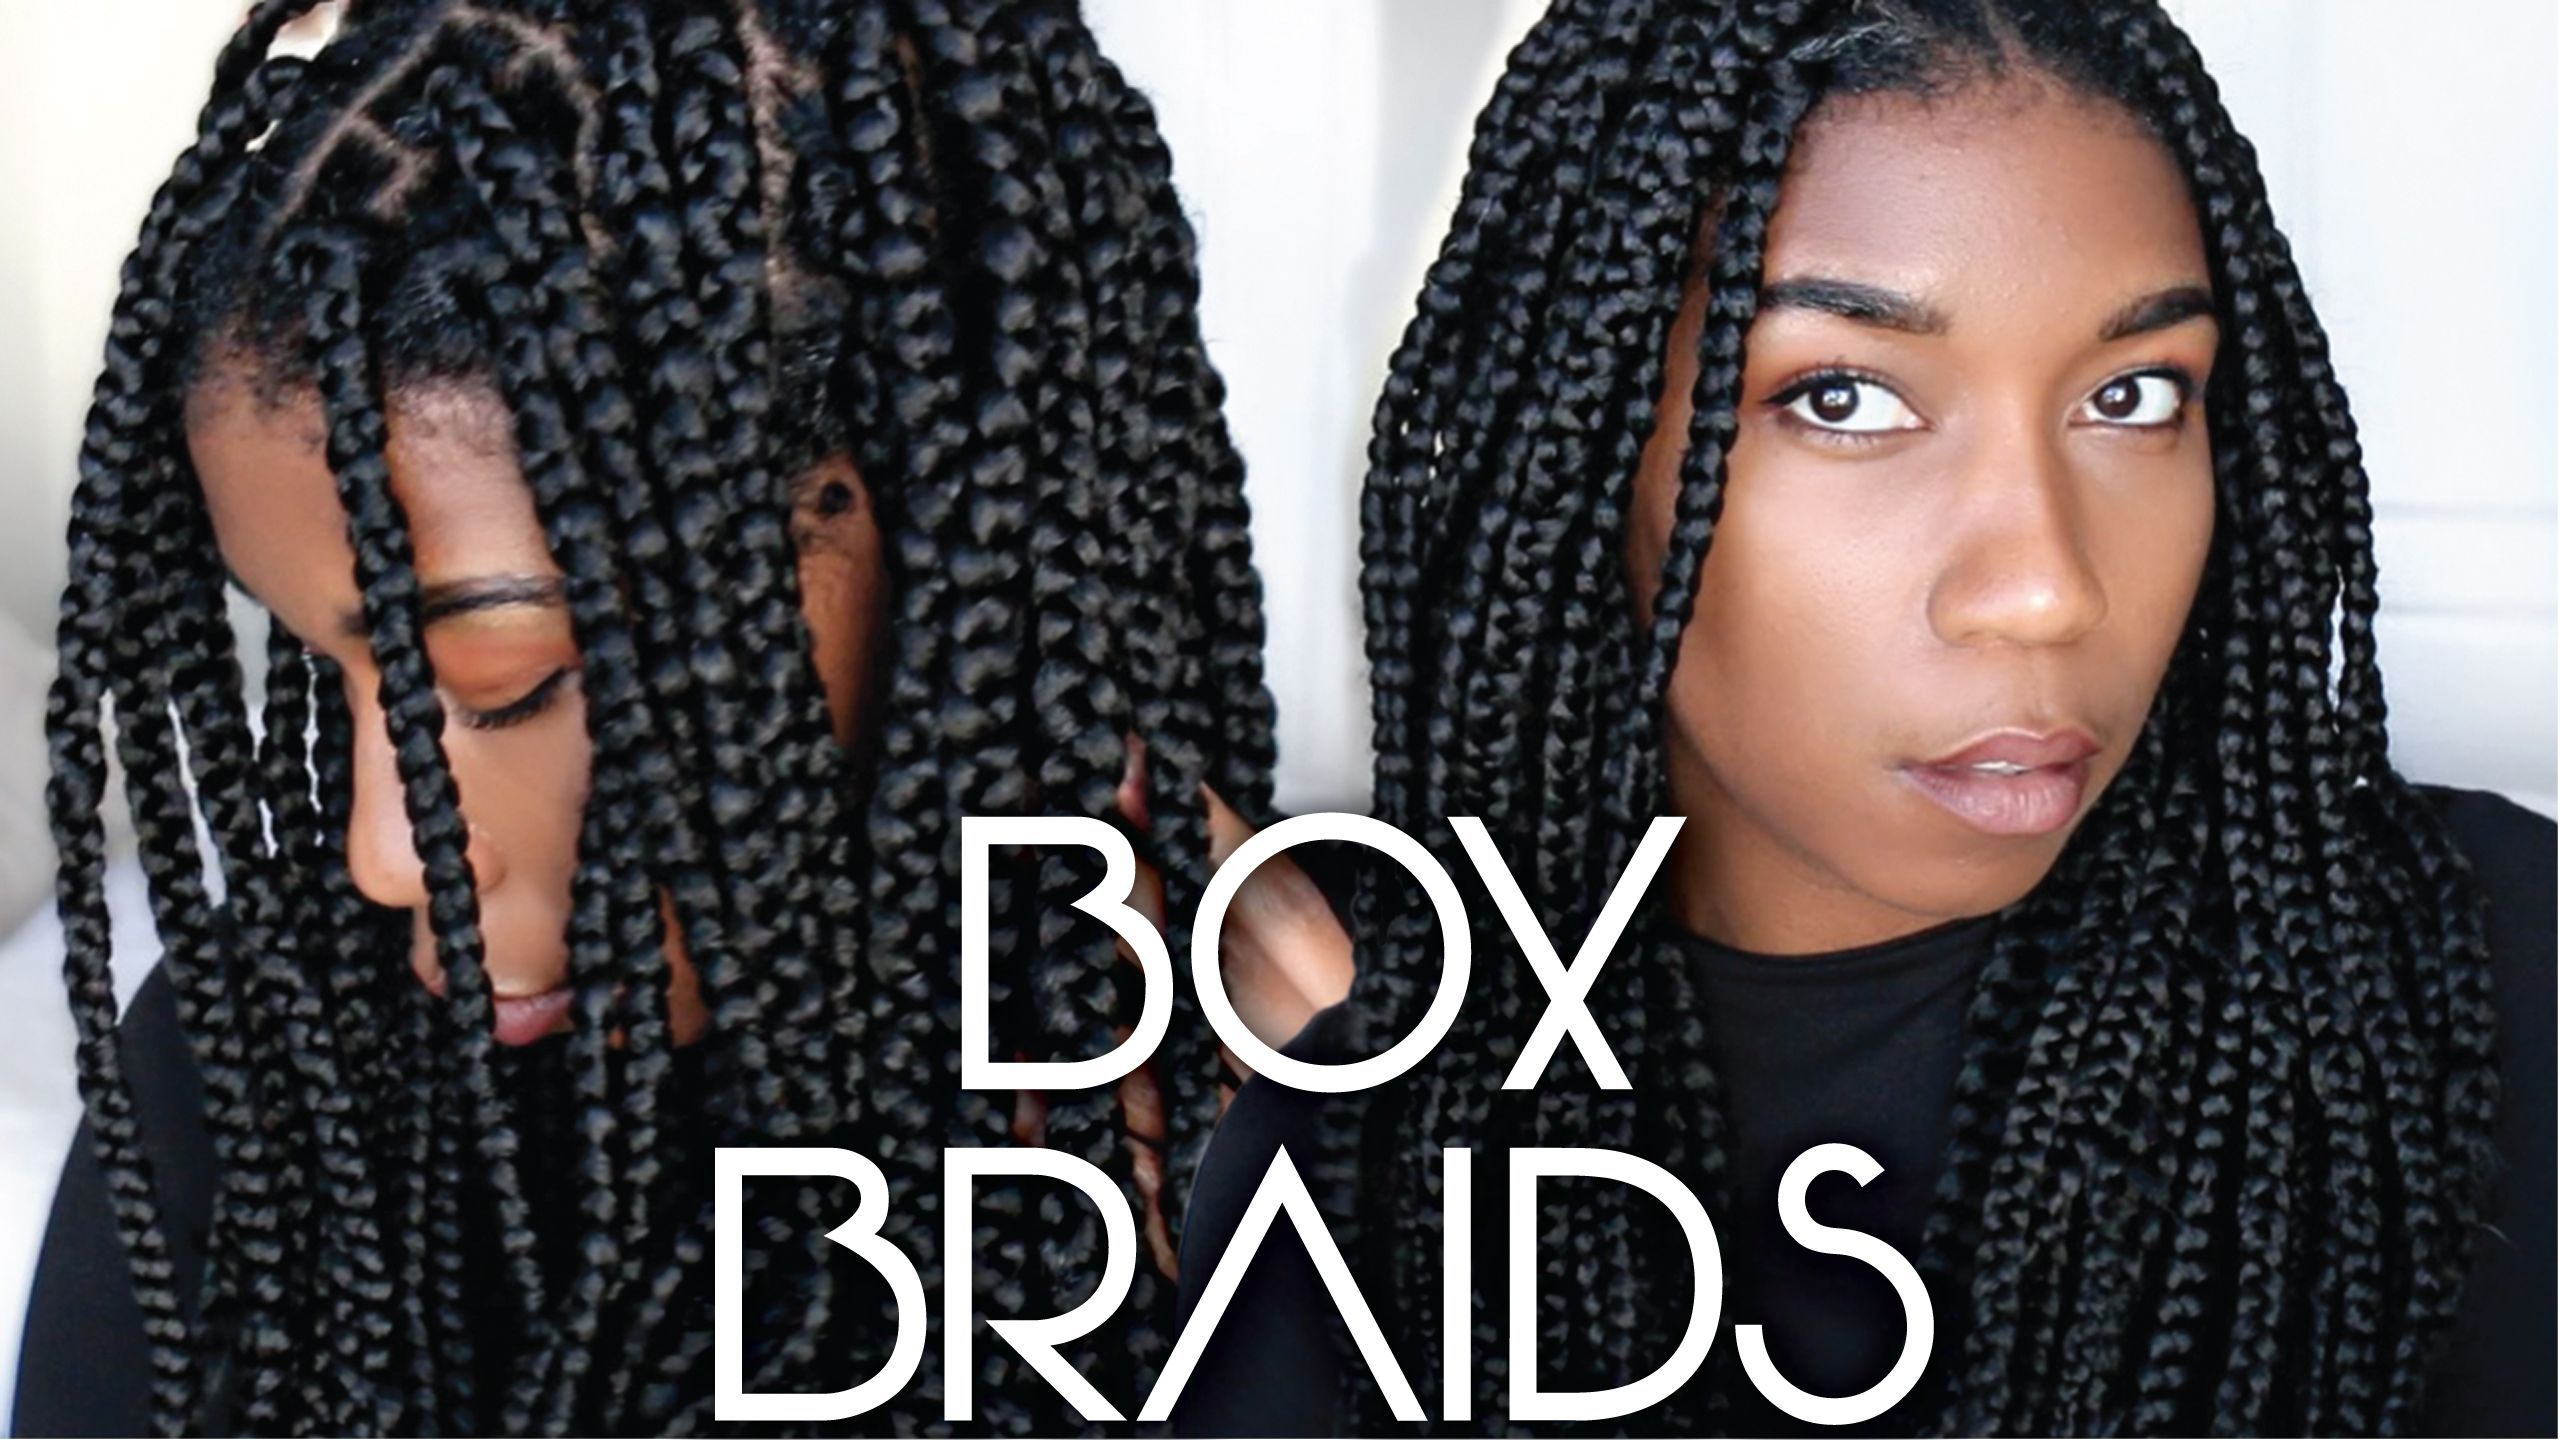 How to install box braids protective style easy technique and step